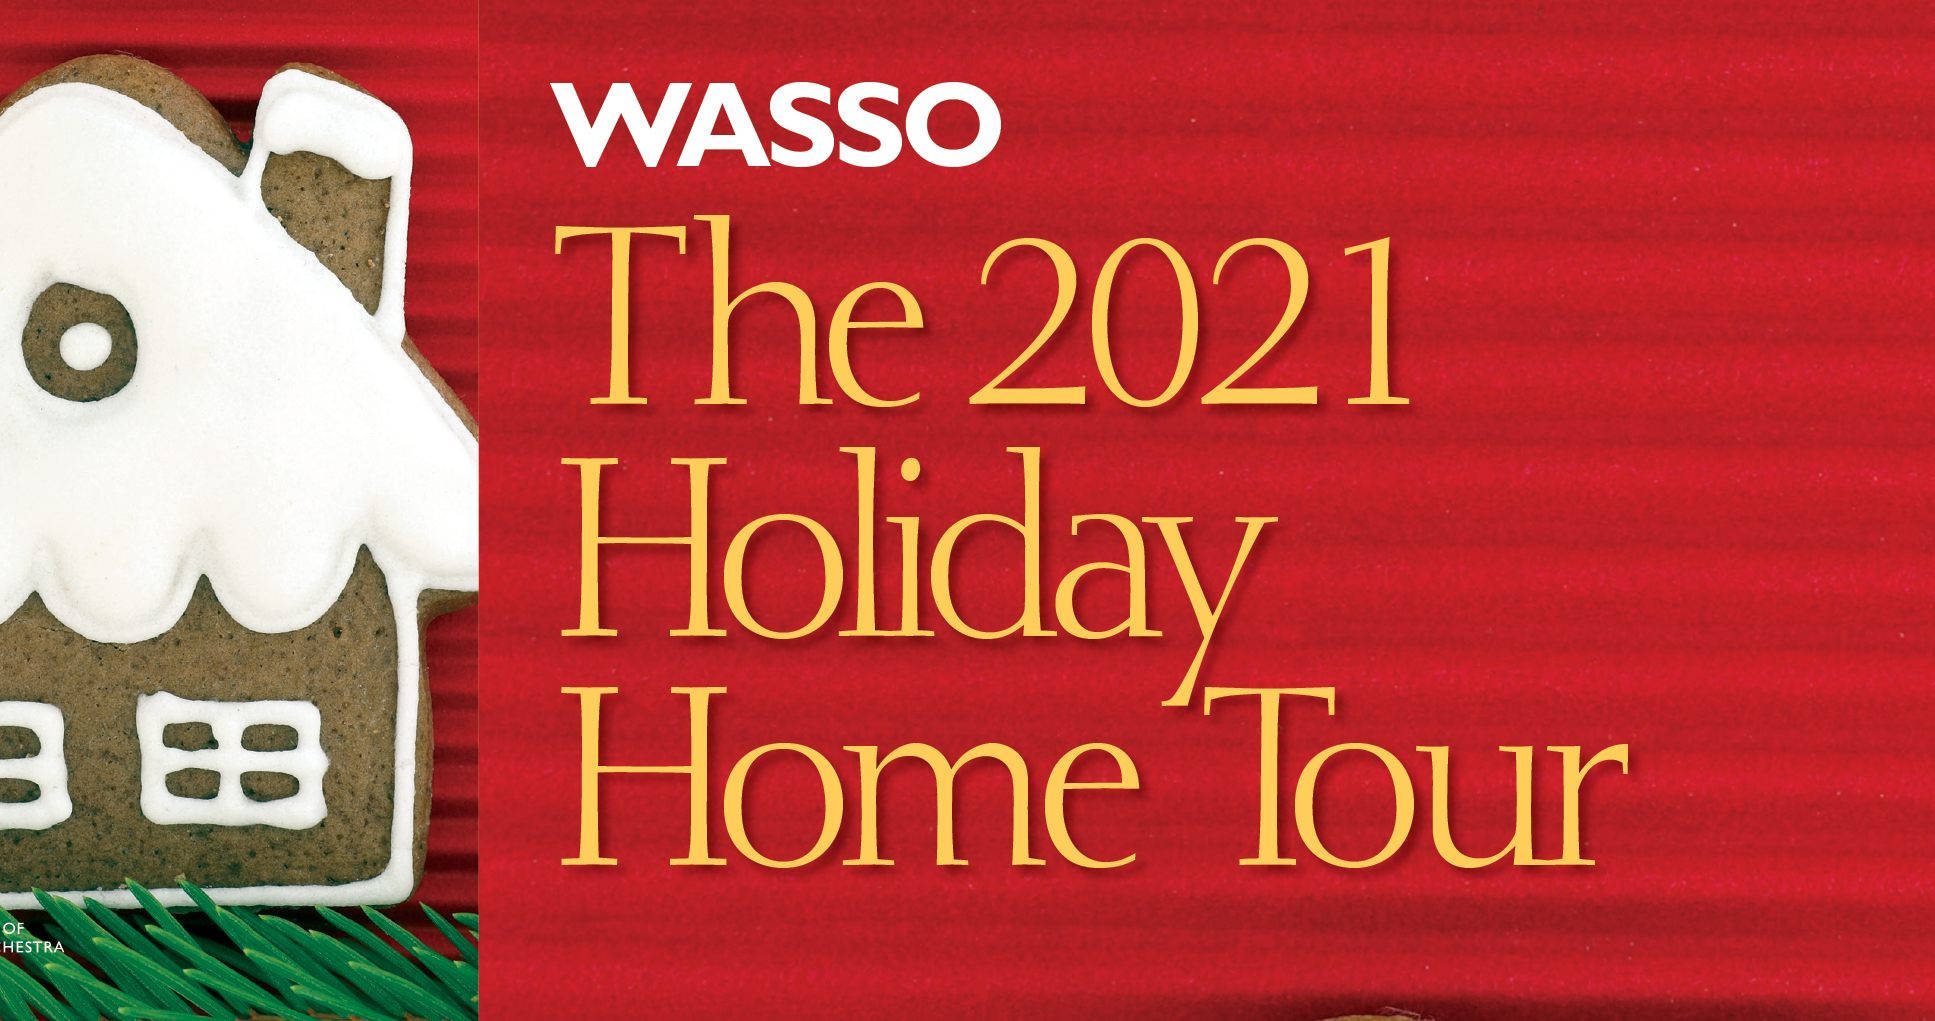 WASSO Holiday Homes Tour & Cookie/Candy Sale December 7 & 8